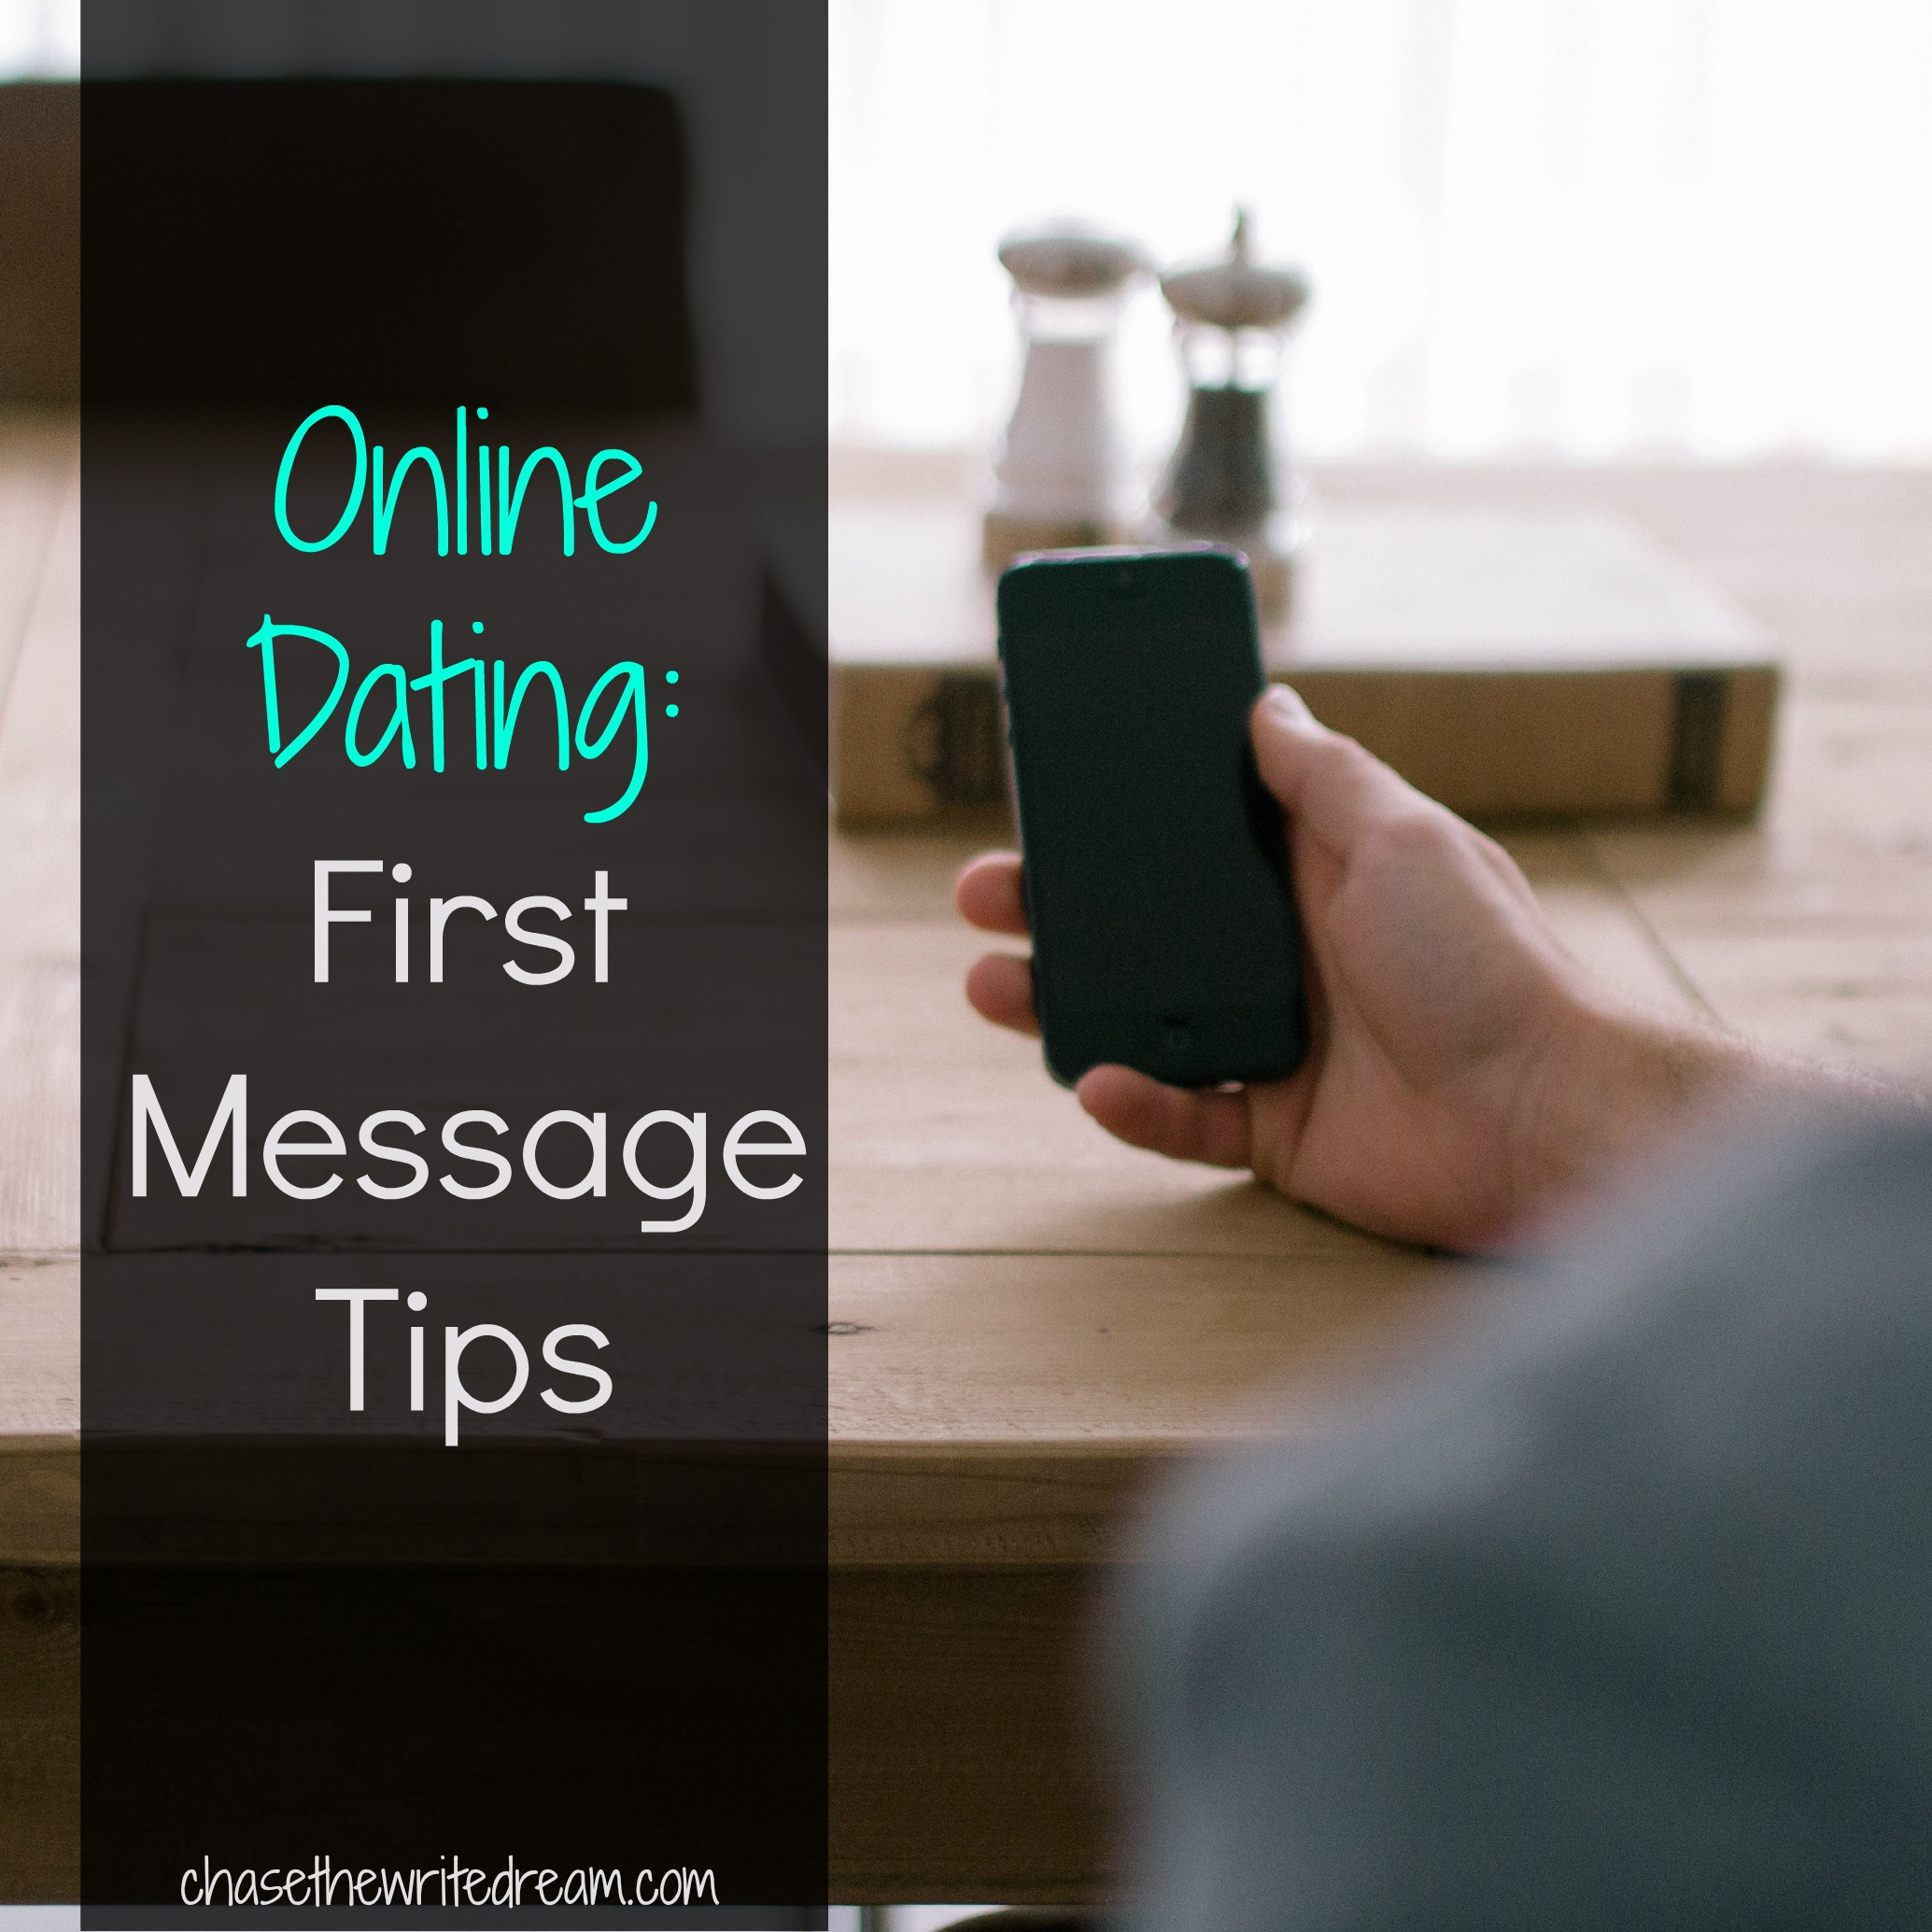 How to send an online dating message